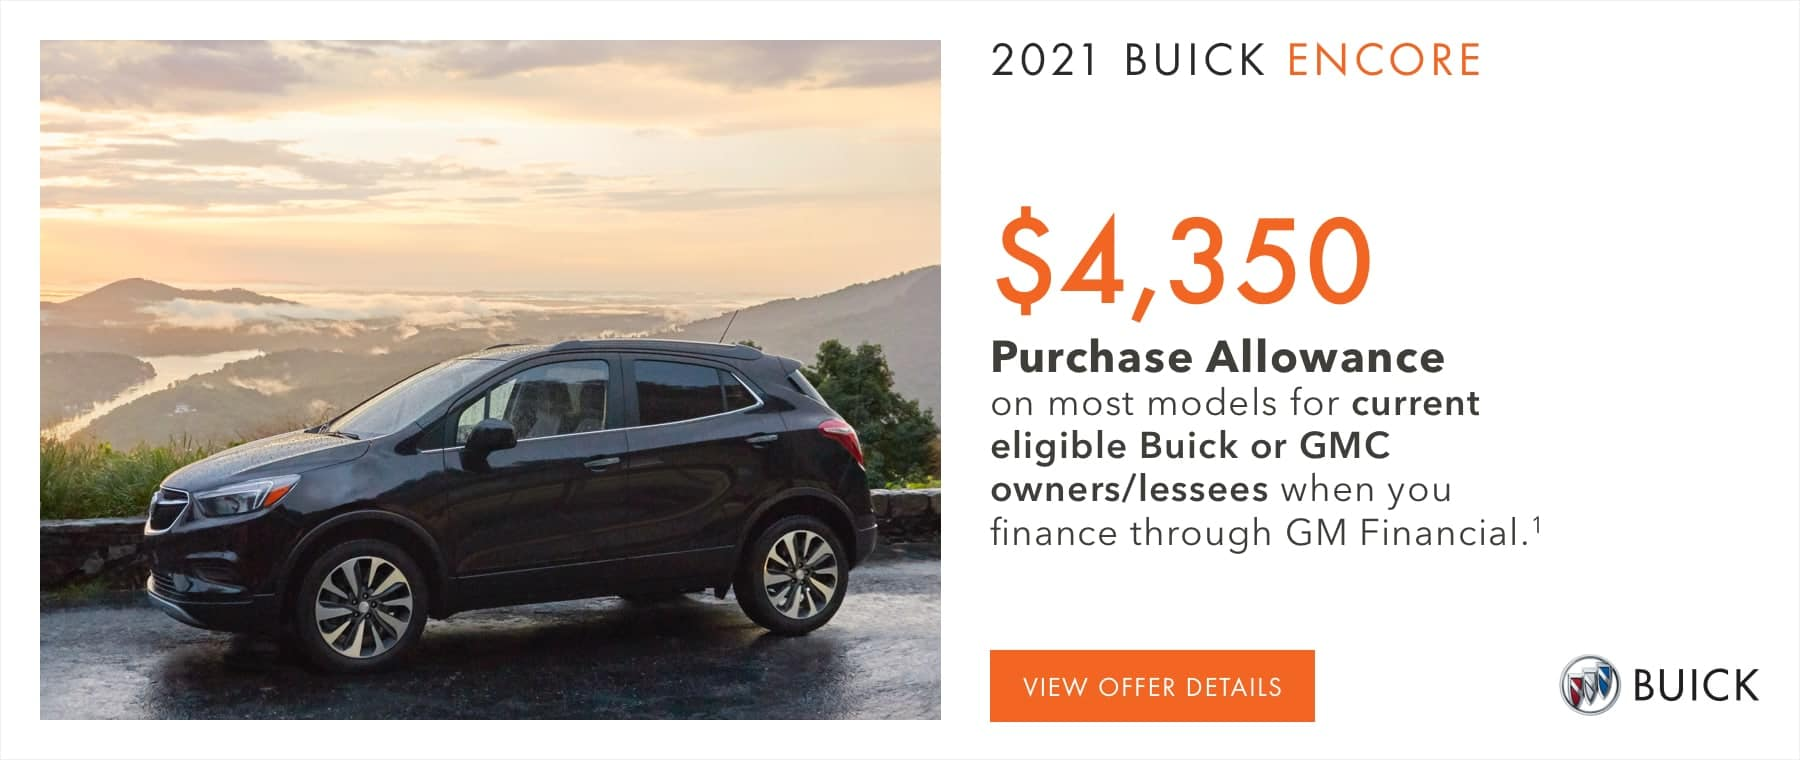 $4,350 Purchase Allowance on most models for current eligible Buick or GMC owners/lessees when you finance through GM Financial.1